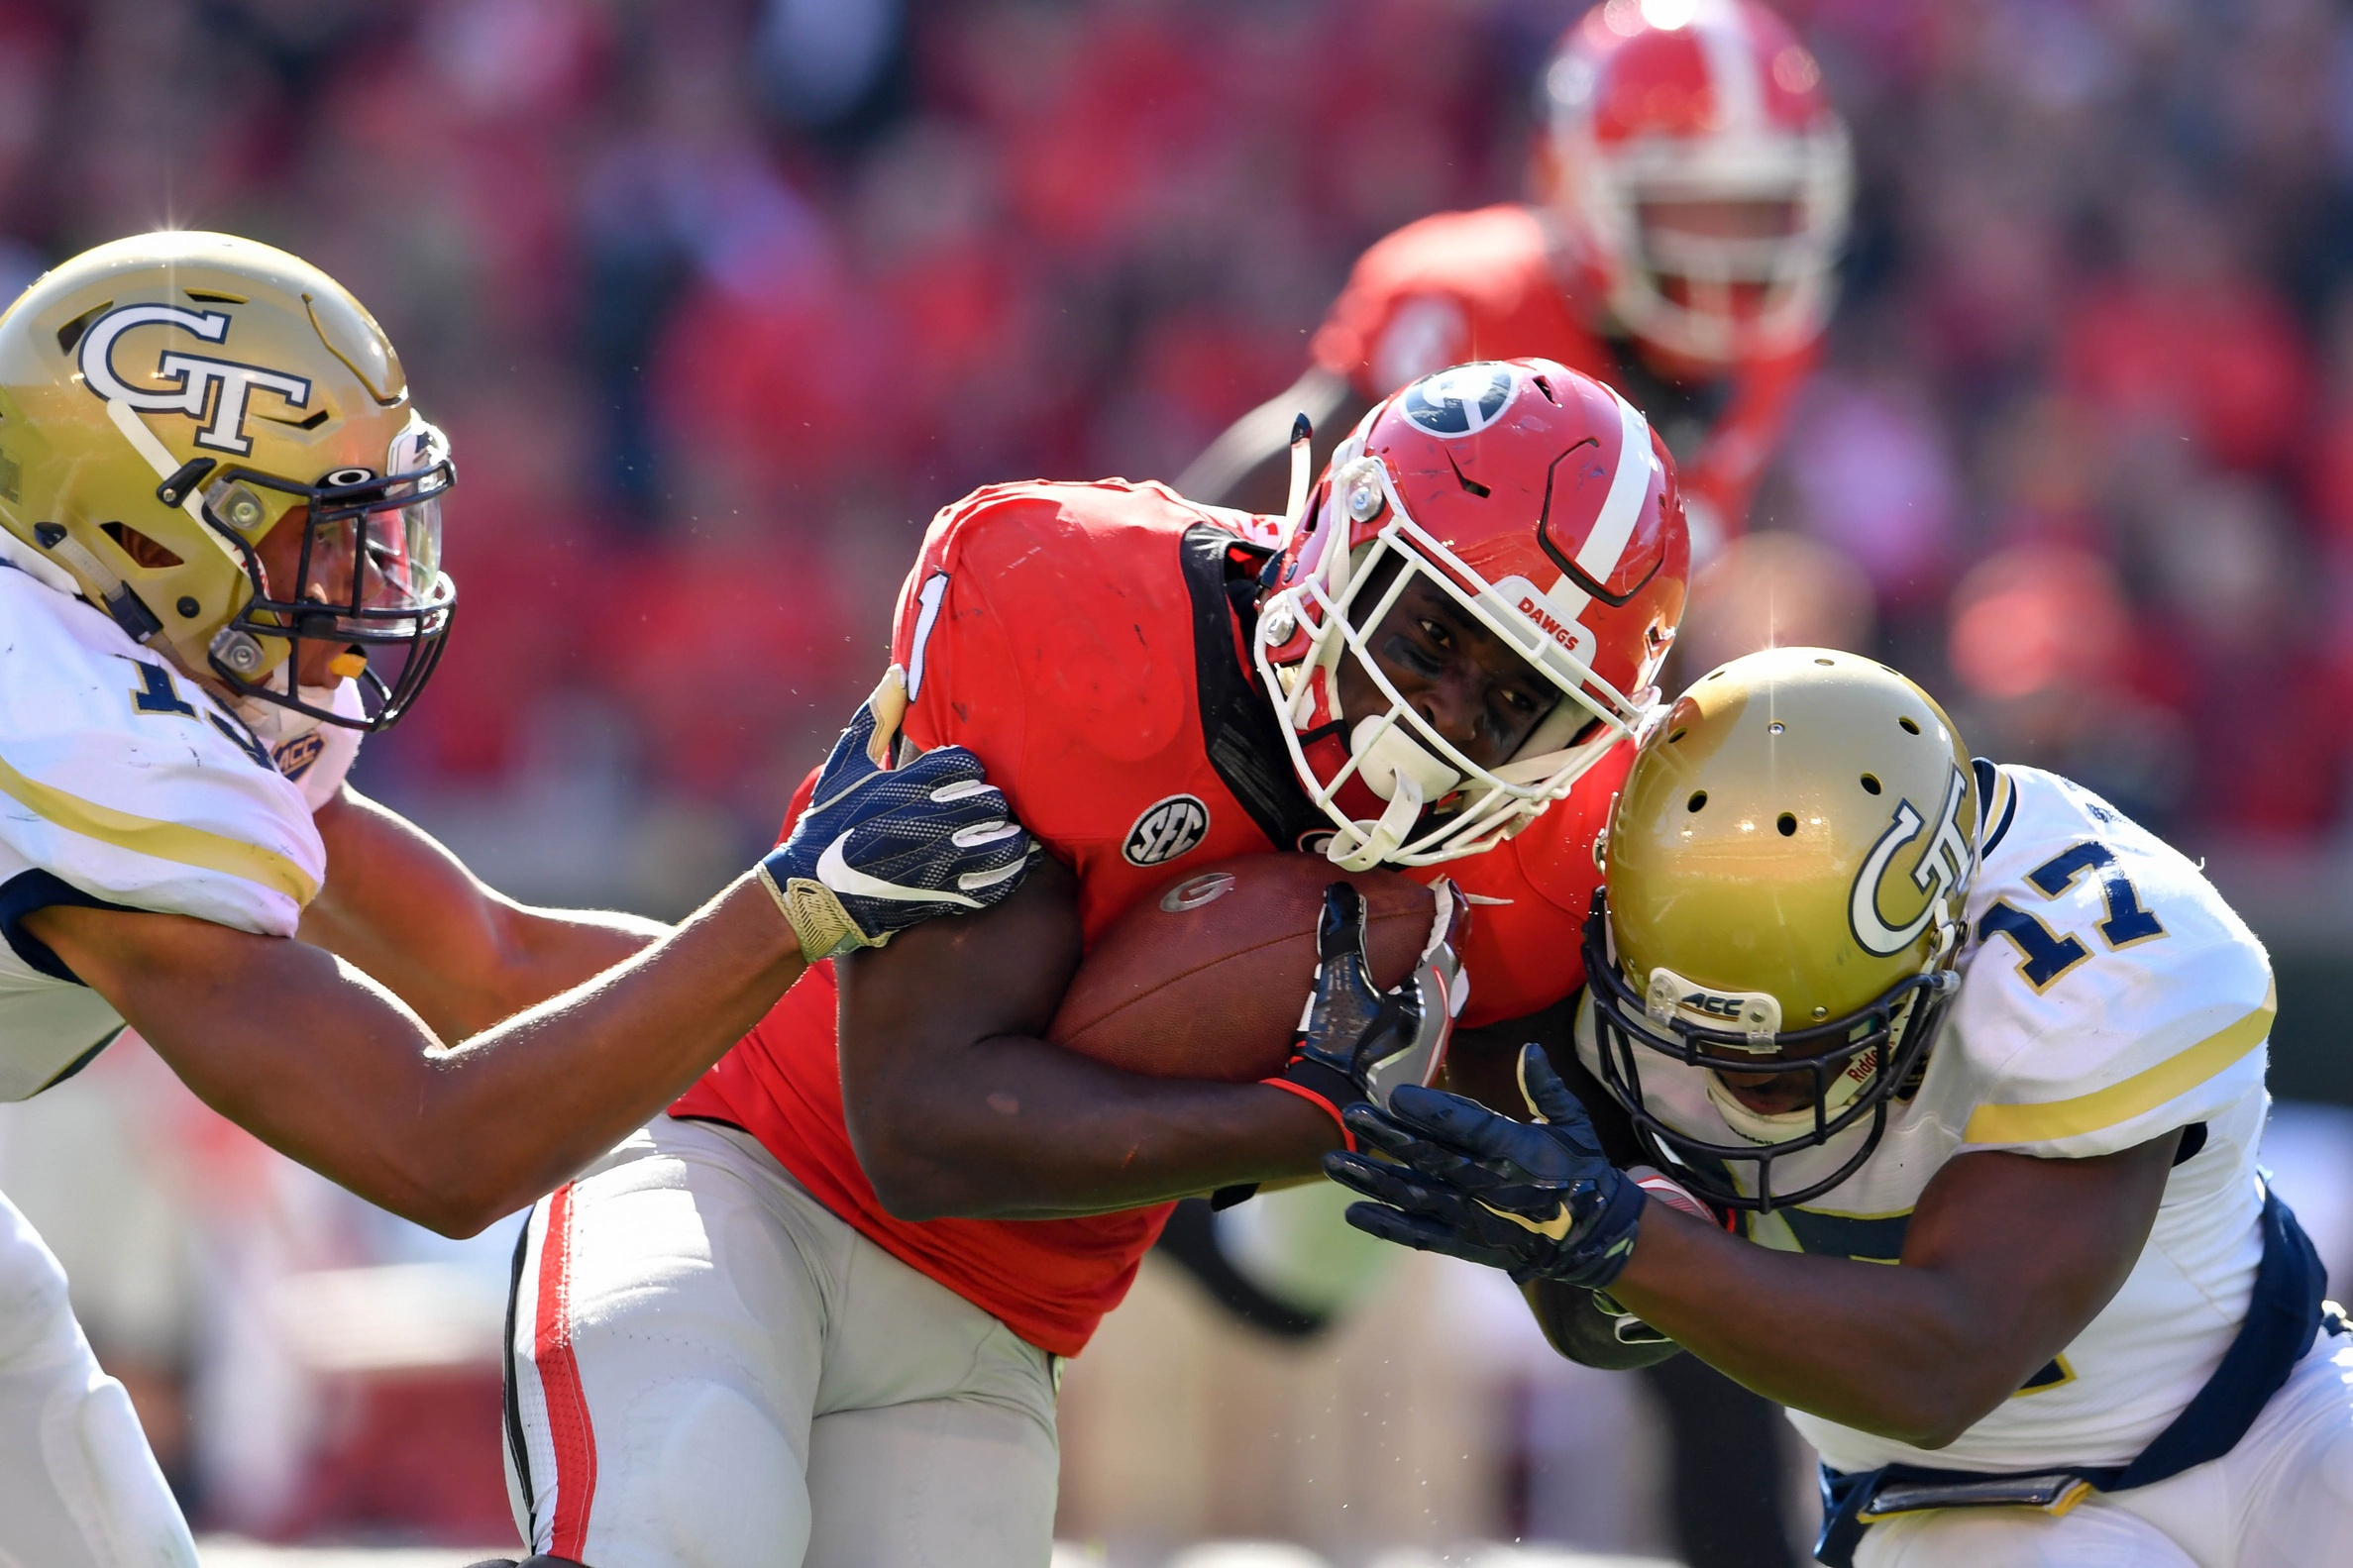 Nov 26, 2016; Athens, GA, USA; Georgia Bulldogs running back Sony Michel (1) is tackled by Georgia Tech Yellow Jackets defensive back A.J. Gray (15) and defensive back Lance Austin (17) after a long run during the second quarter at Sanford Stadium. Mandatory Credit: Dale Zanine-USA TODAY Sports